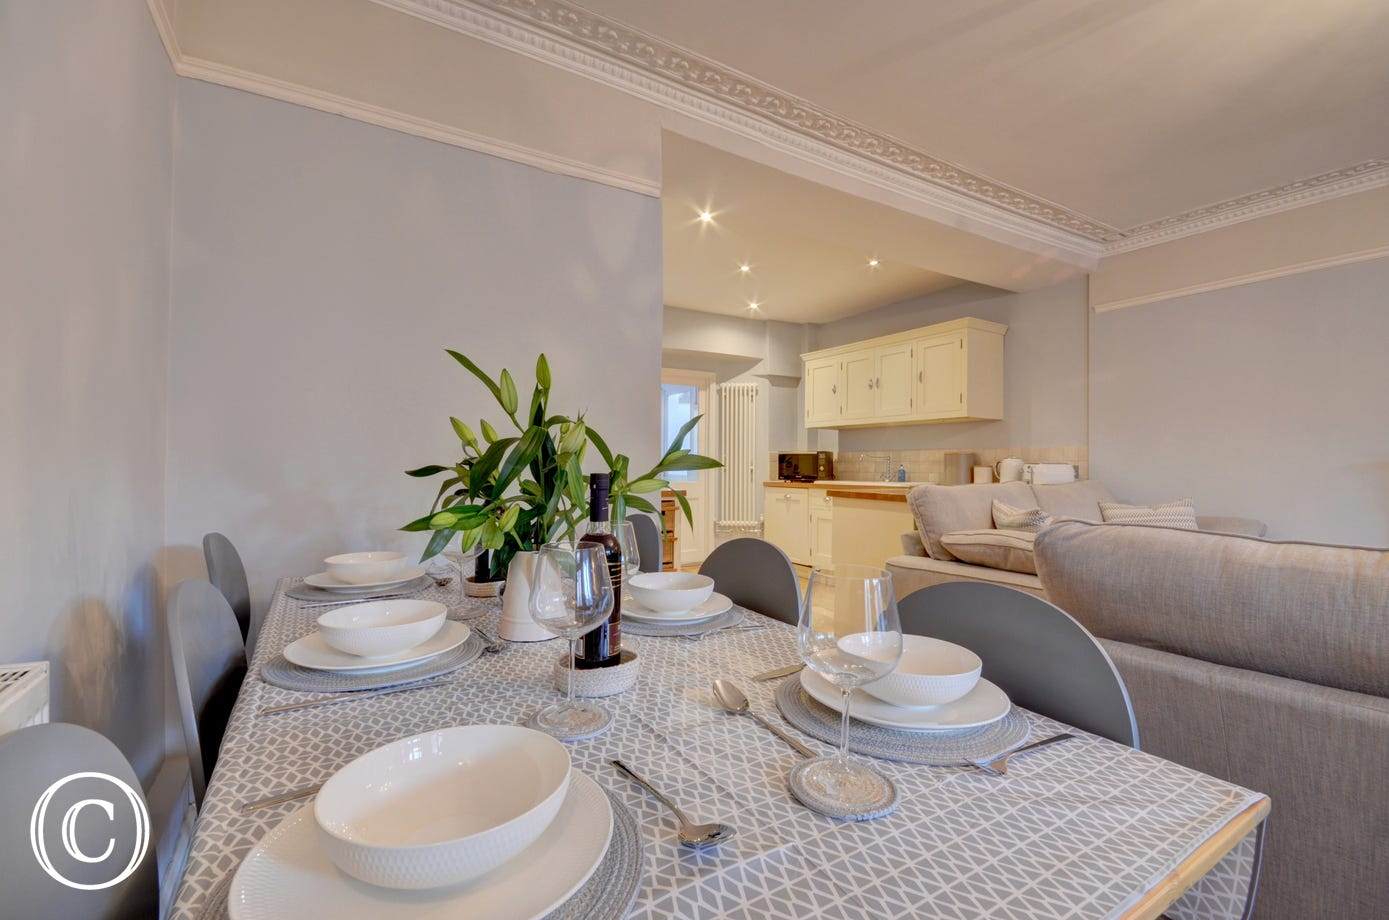 Enjoy dining together is the stylish open plan living area